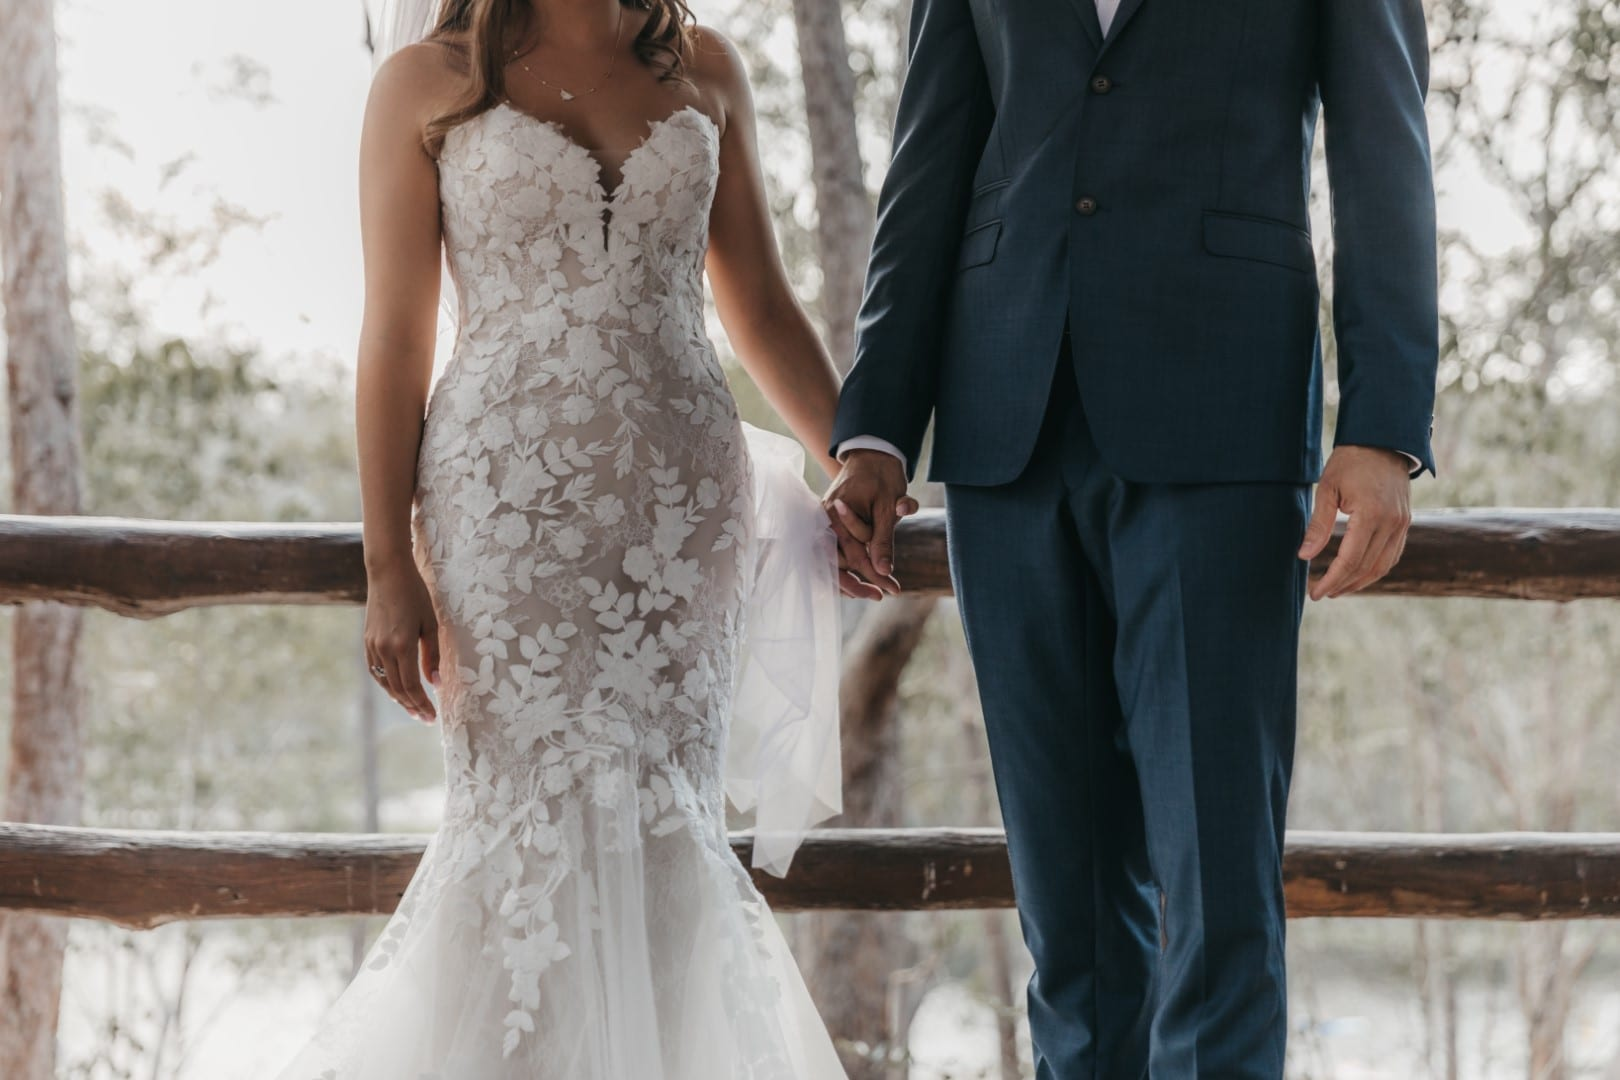 Julia wears Livie by Enzoani wedding dress